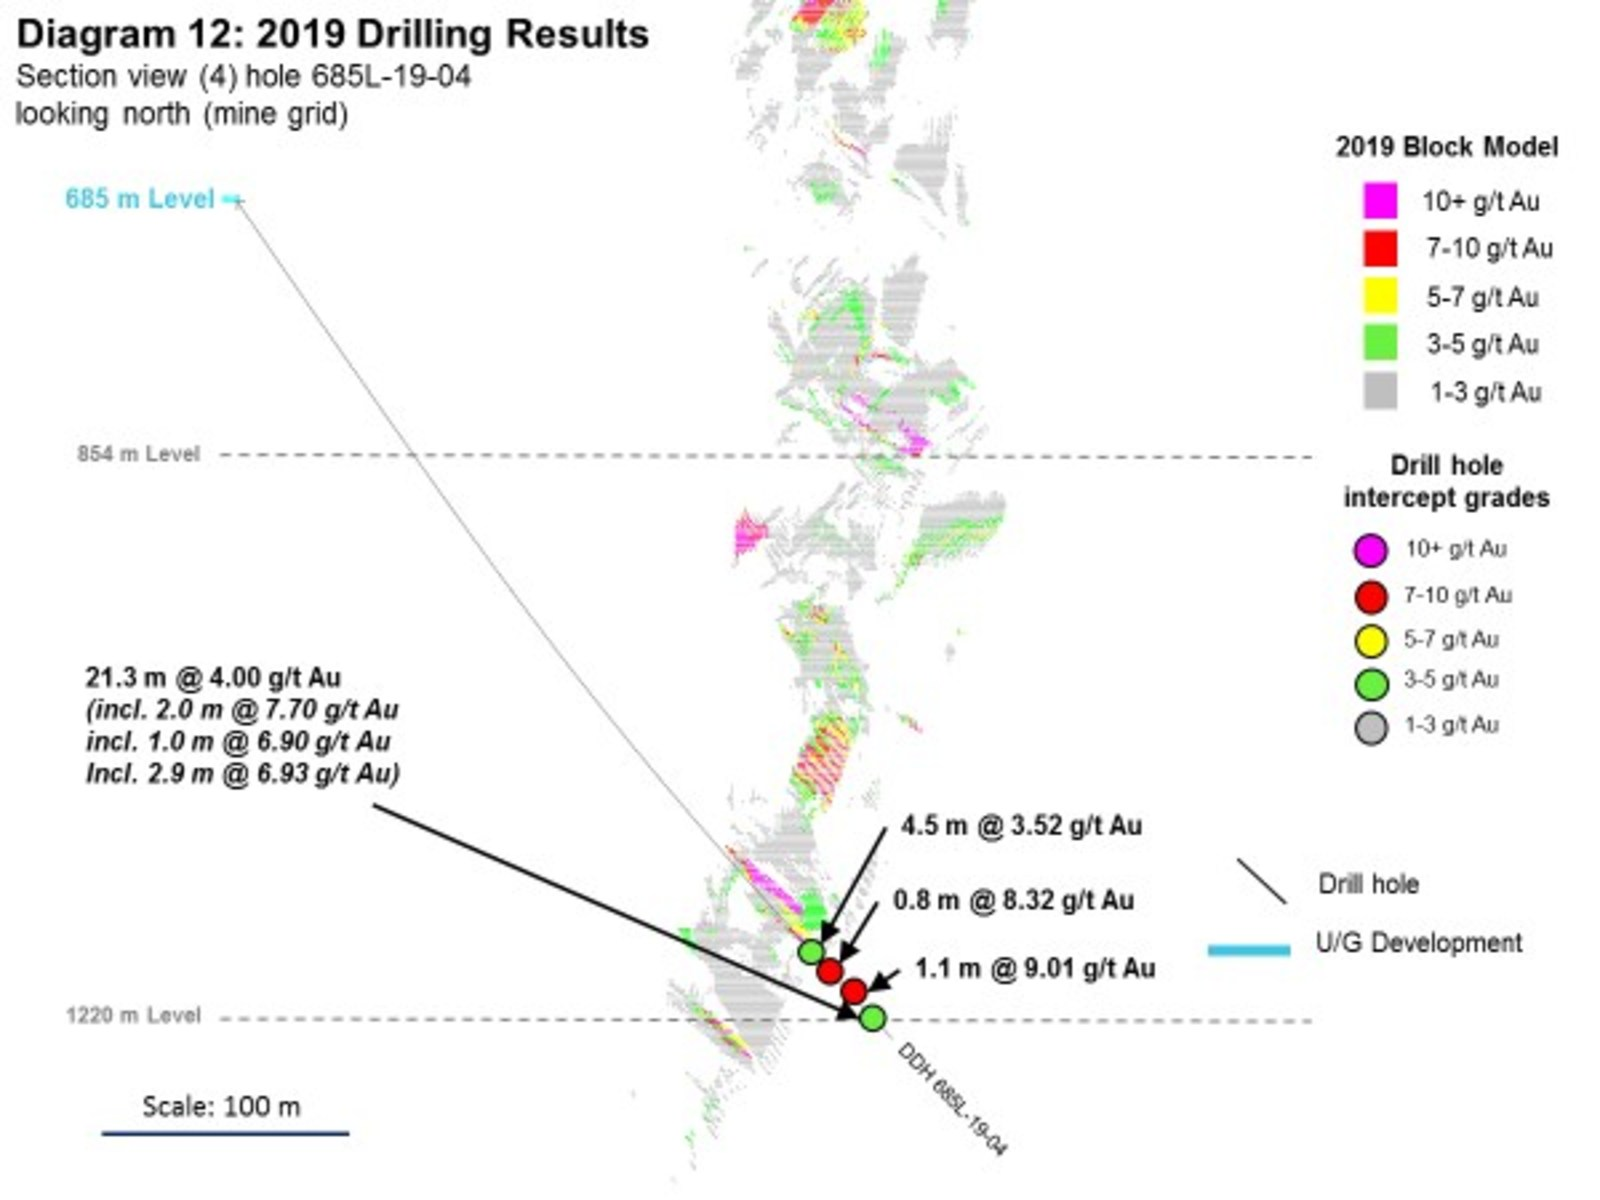 Diagram 12: 2019 Drilling Results